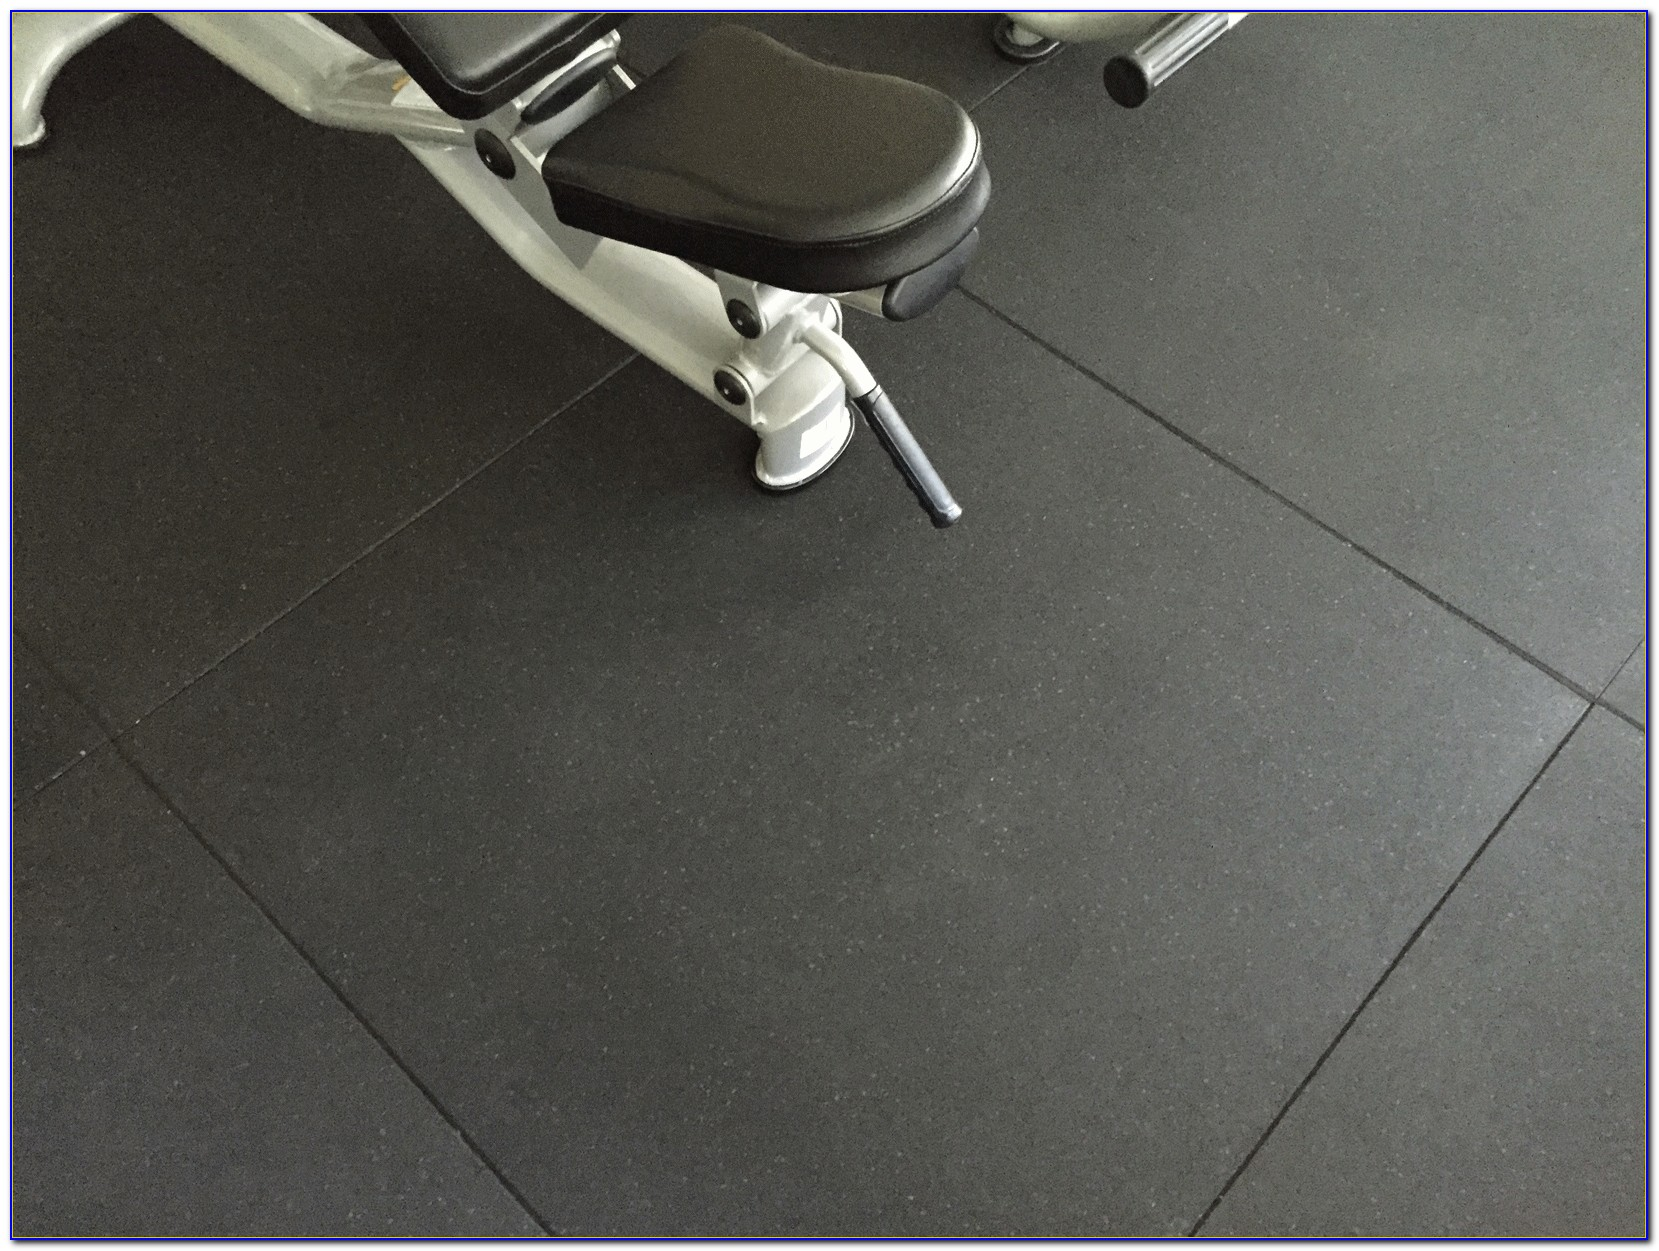 Rubber Floor Mats For Gym Cleaning